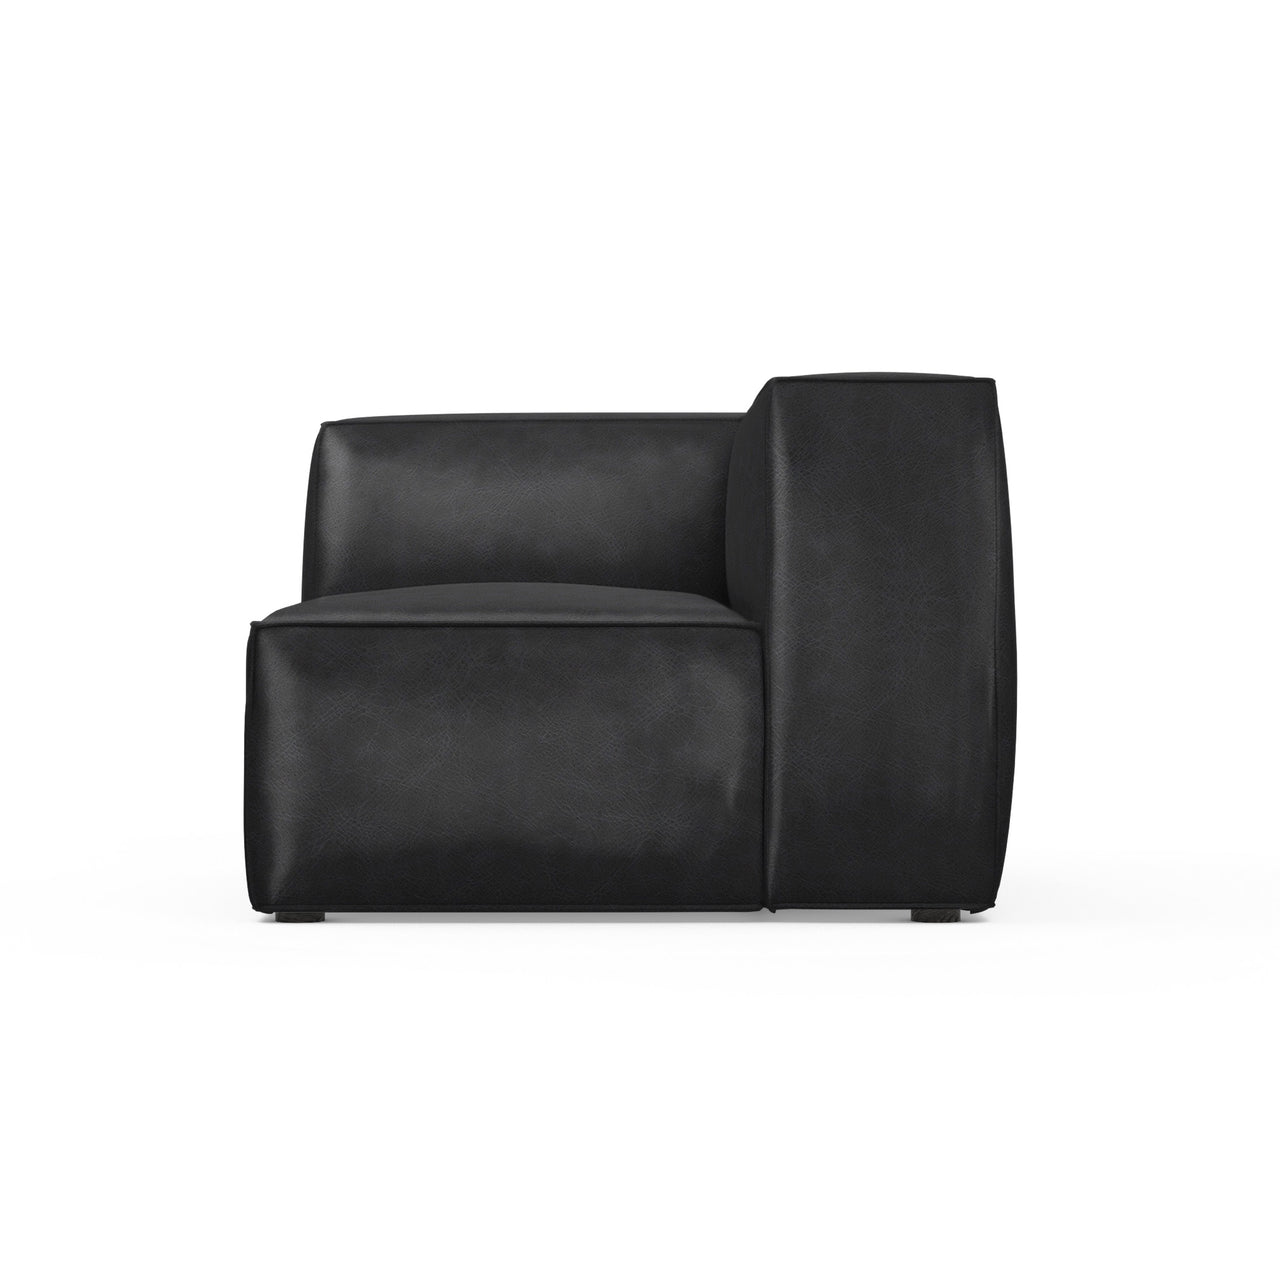 Varick Corner Chair - Black Jack Vintage Leather